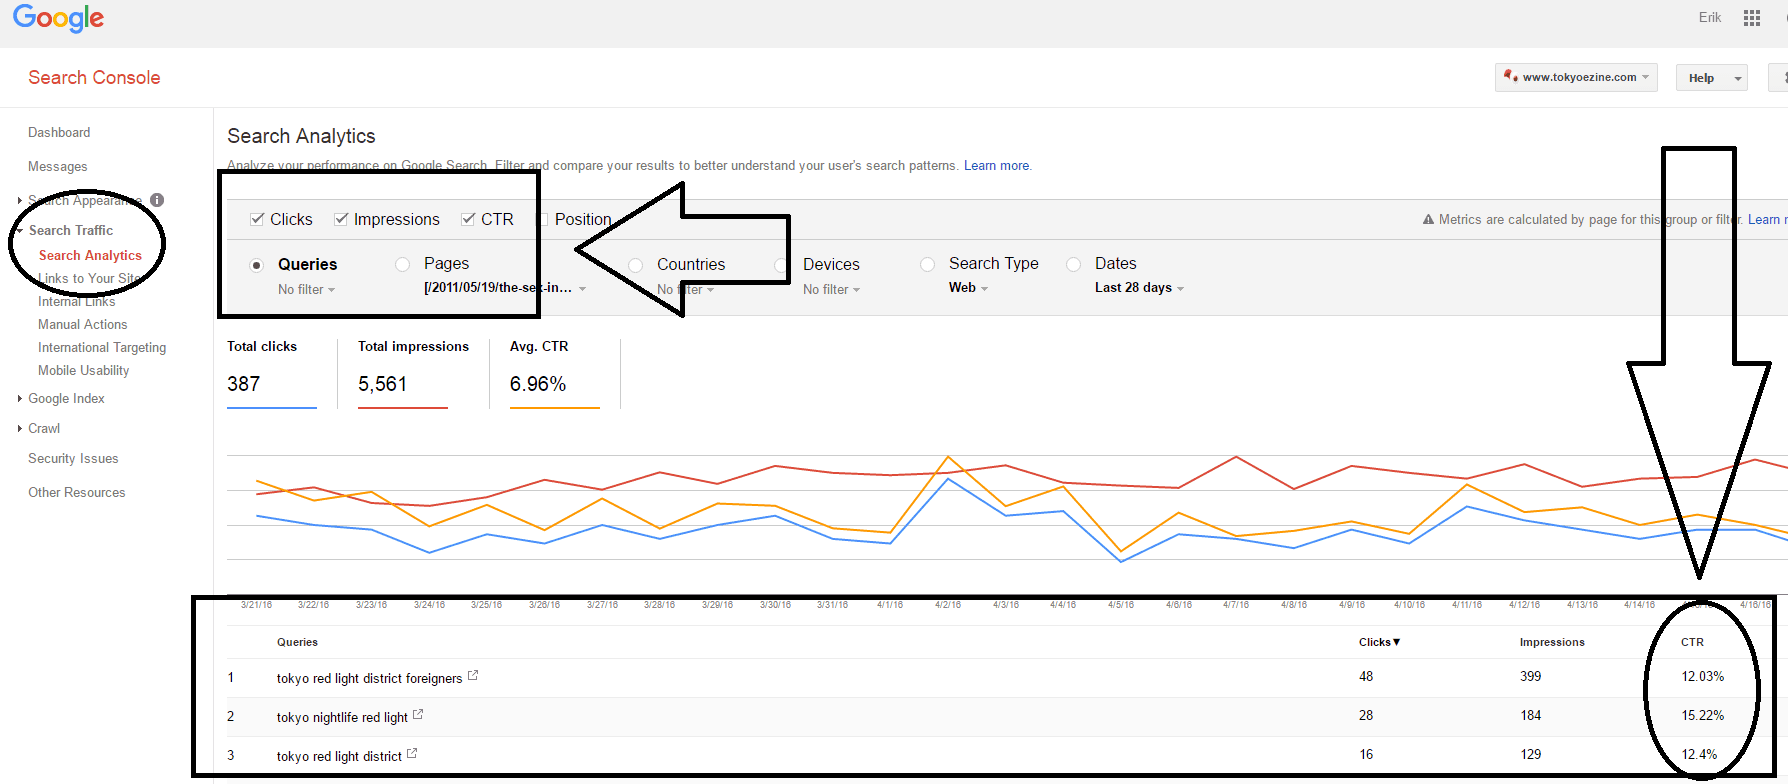 search traffic_search analytics_clicks-impressions-CTR-queries under Google search console